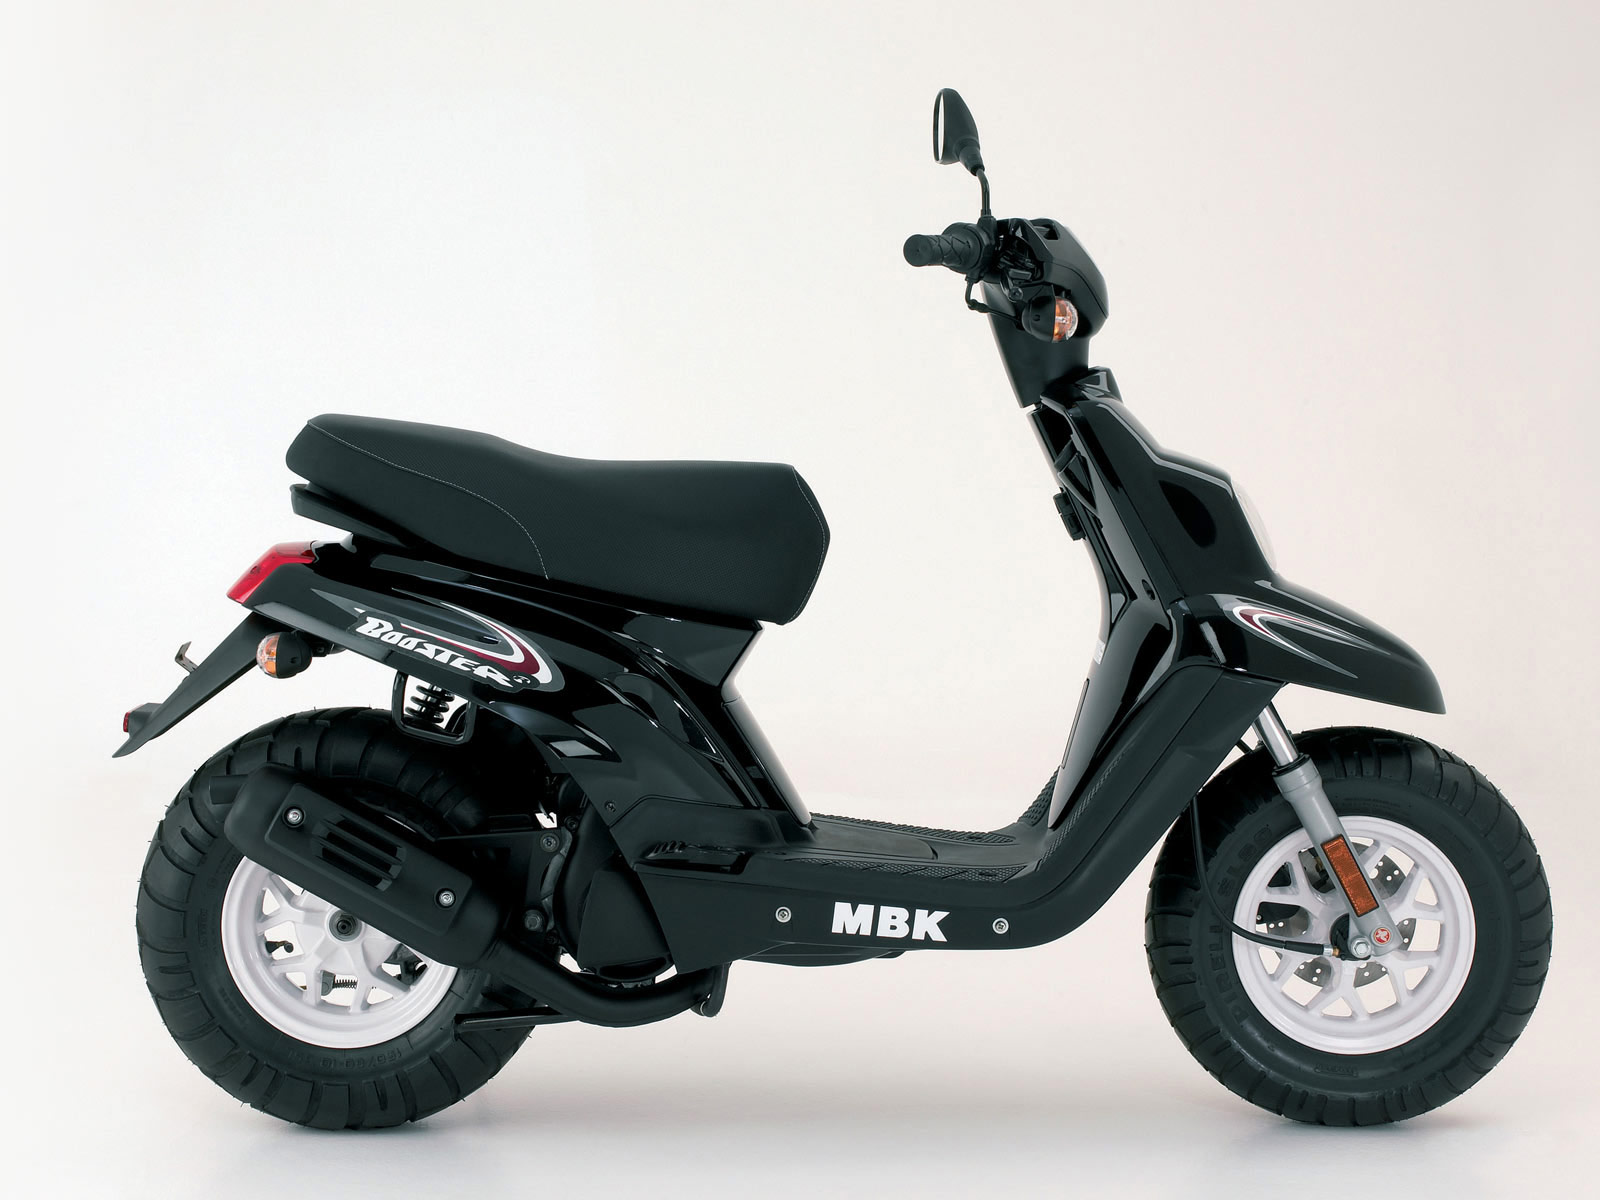 BMW Booster Seat >> MBK Scooter pictures. 2006 MBK Booster specifications